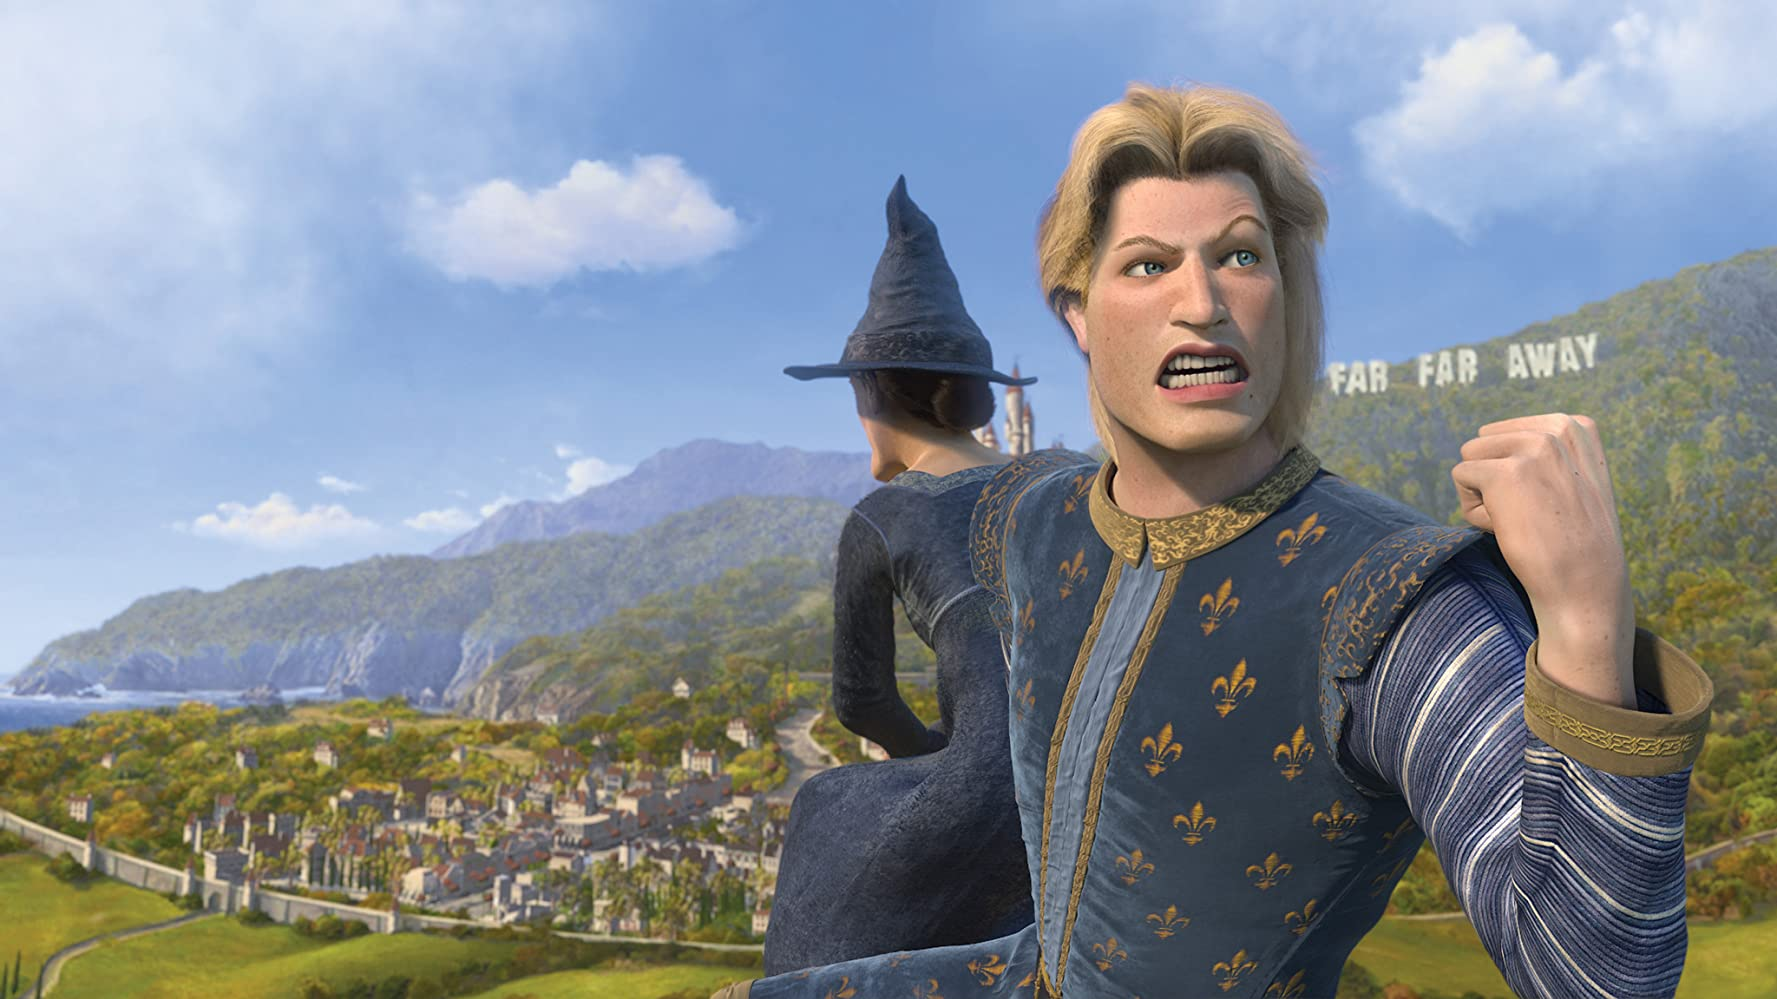 Rupert Everett in Shrek the Third (2007)